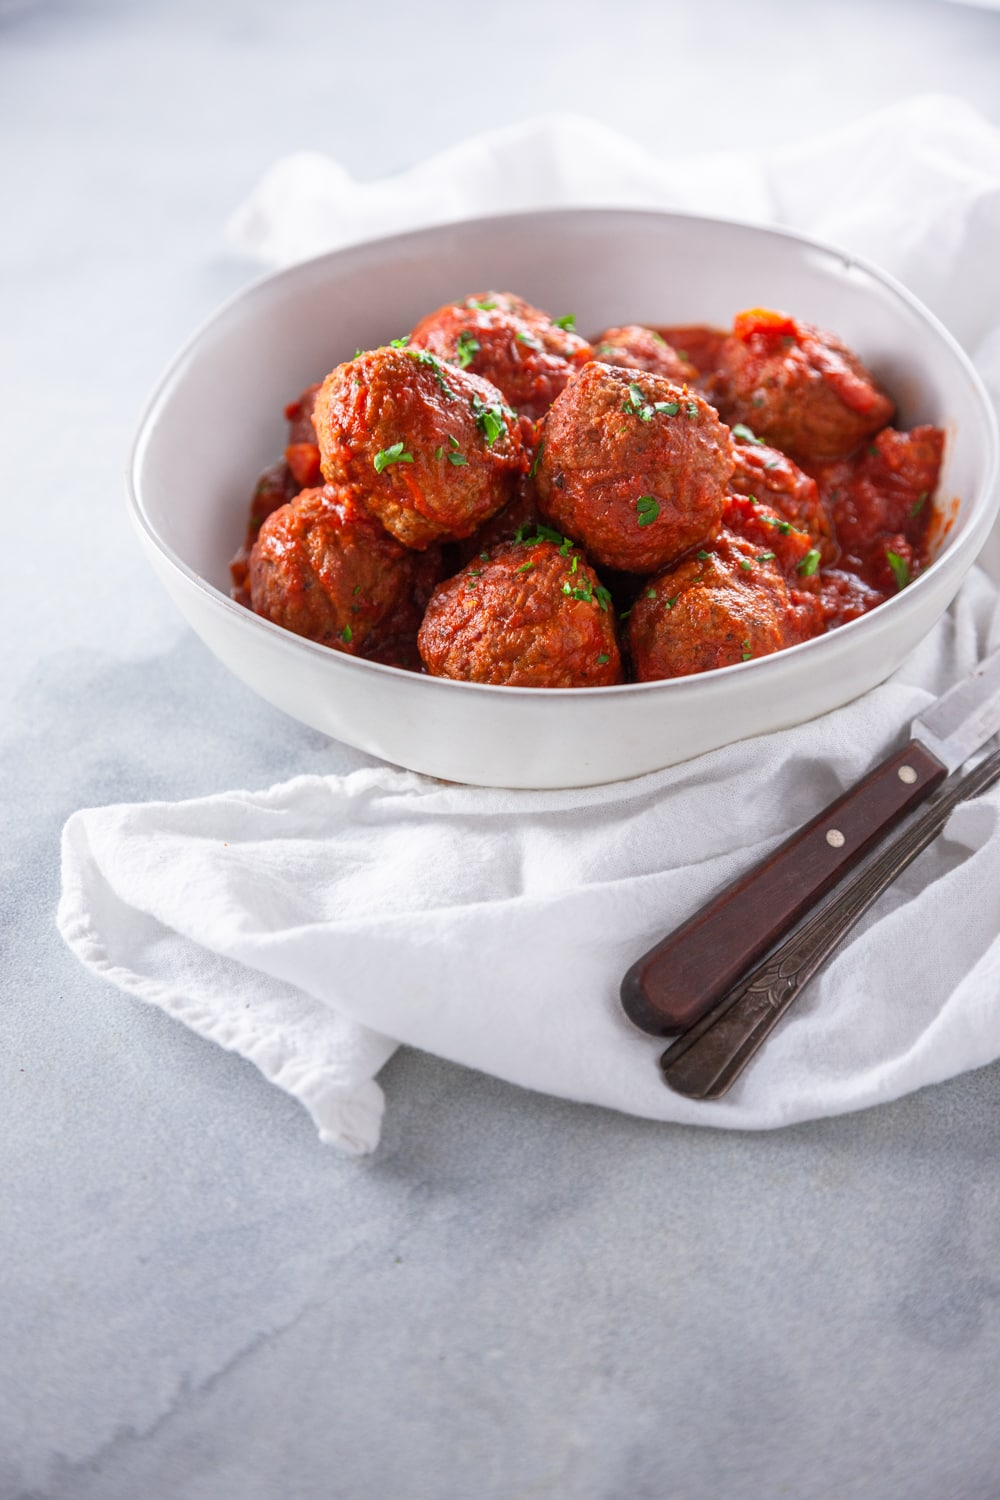 Italian Meatballs with Red Sauce in a white bowl with a napkin.